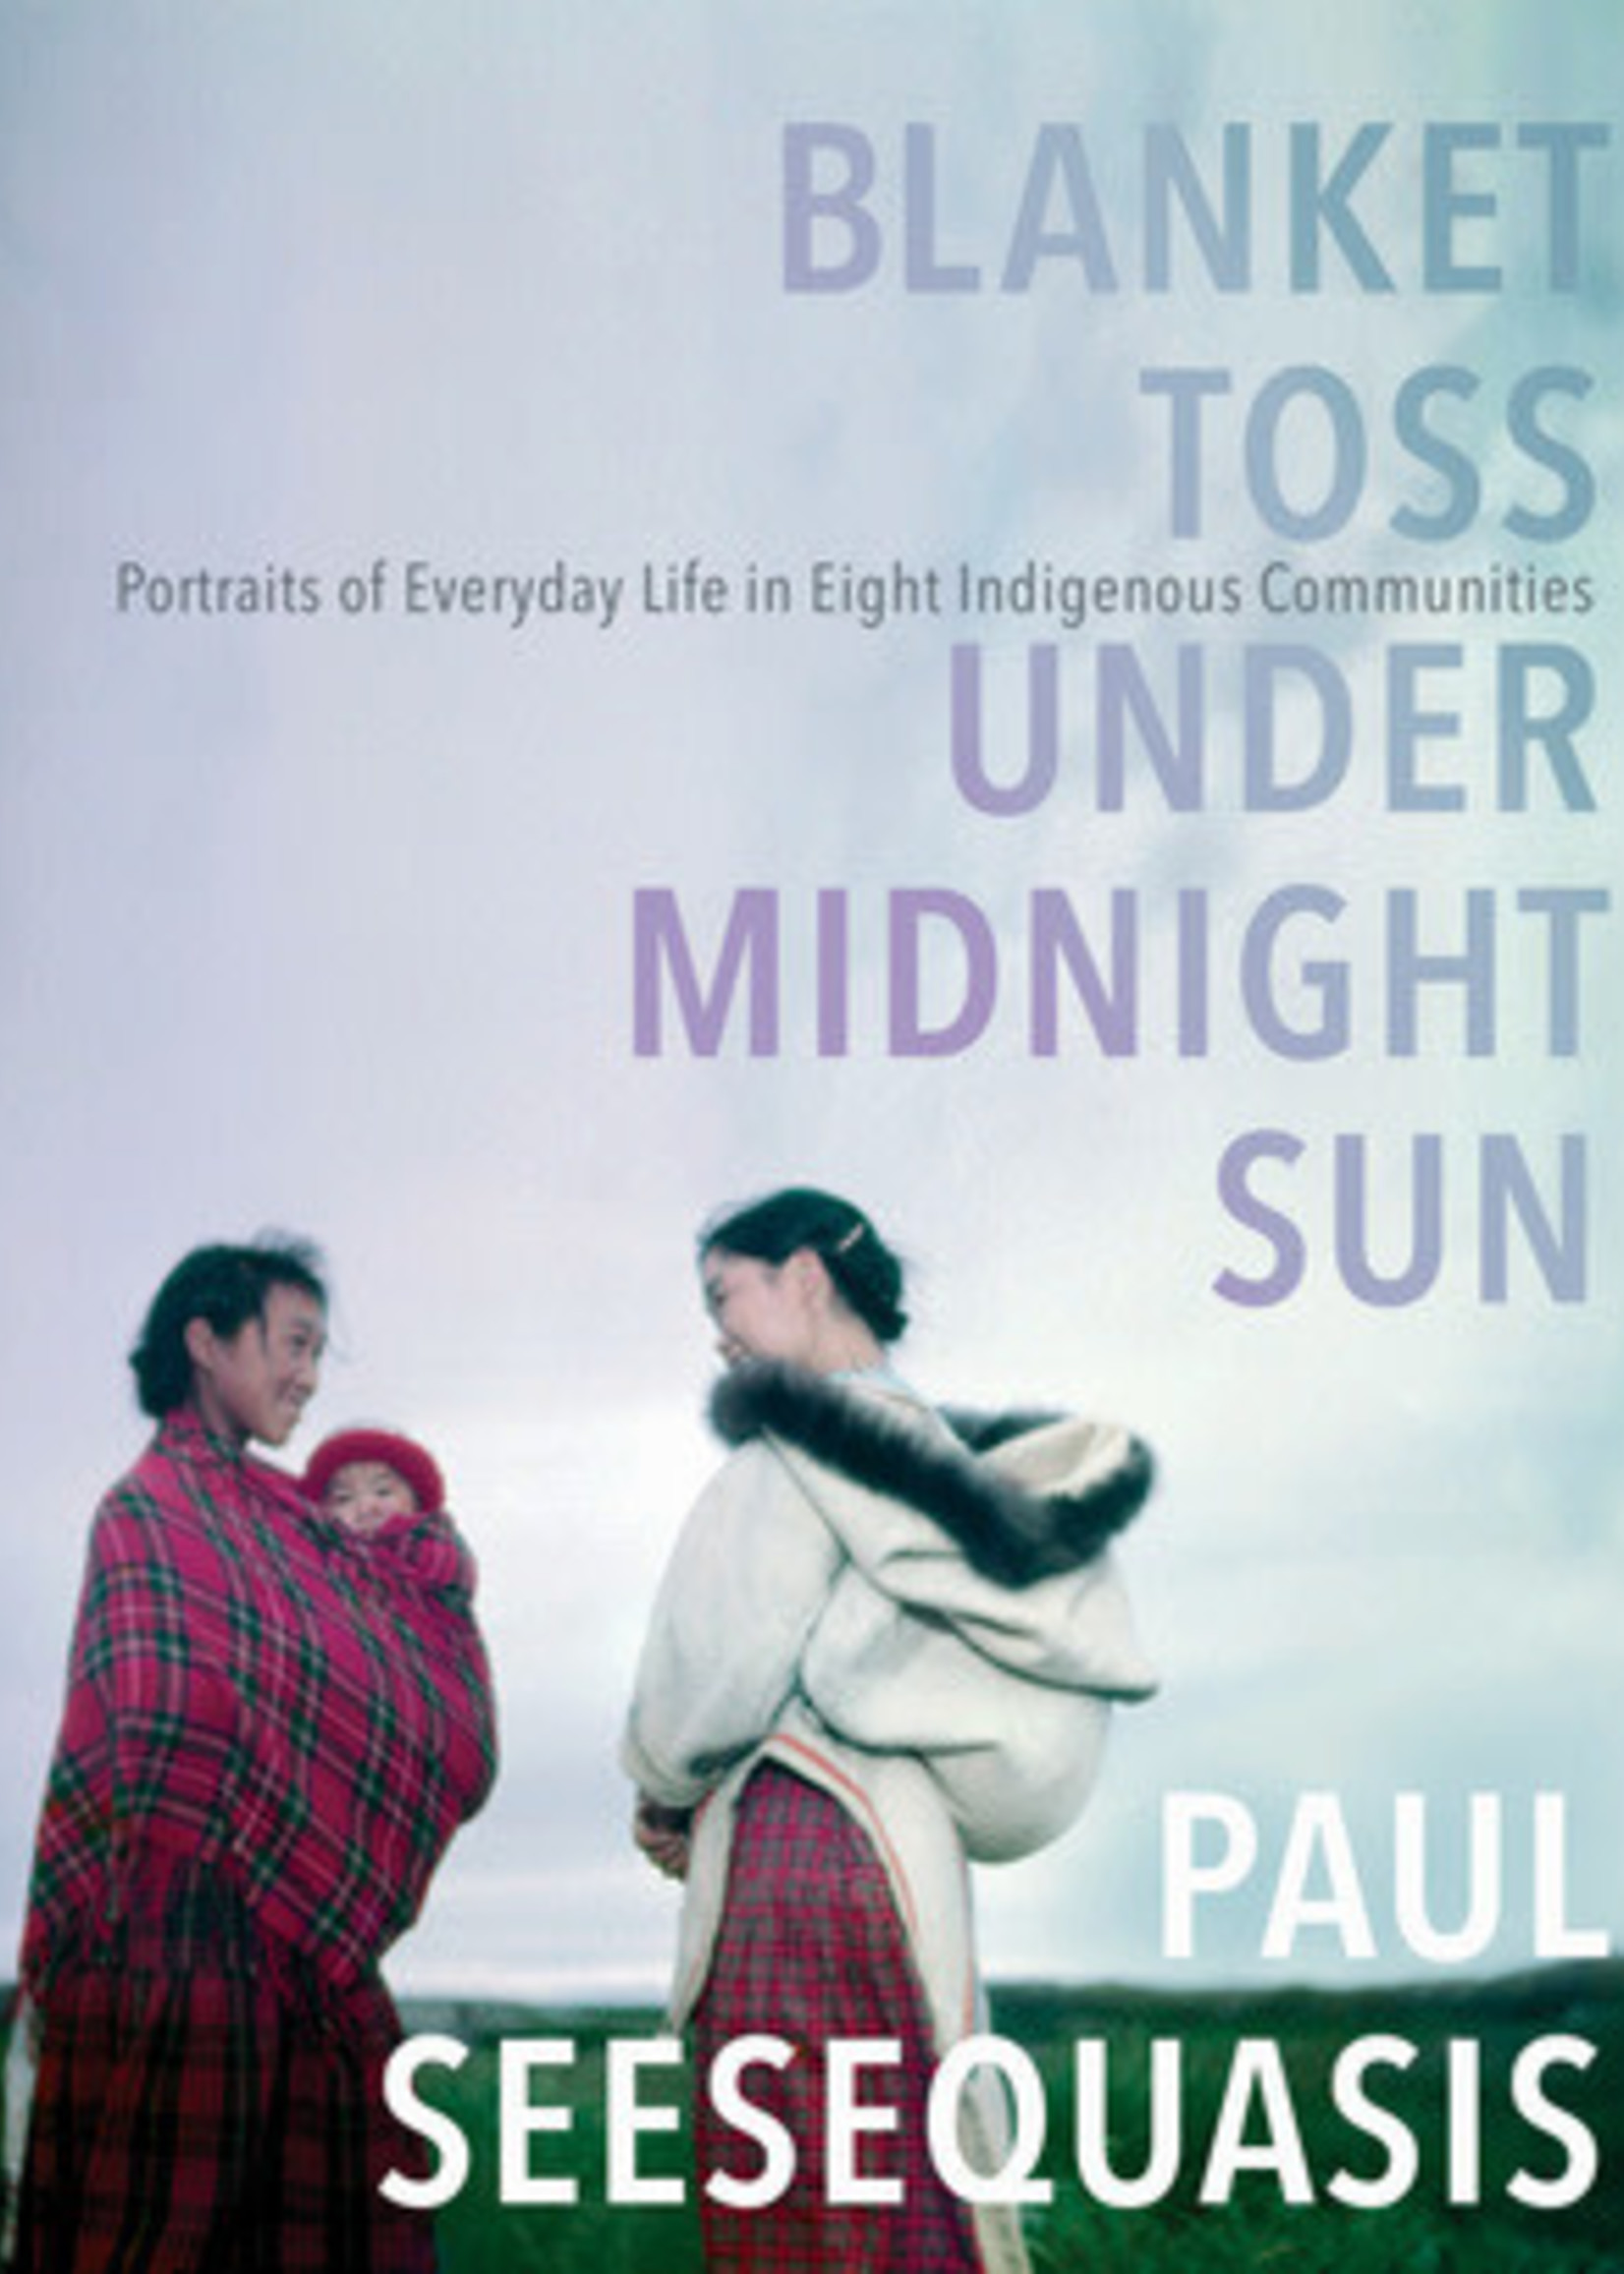 Blanket Toss Under Midnight Sun: Portraits of Everyday Life in Eight Indigenous Communities by Paul Seesequasis